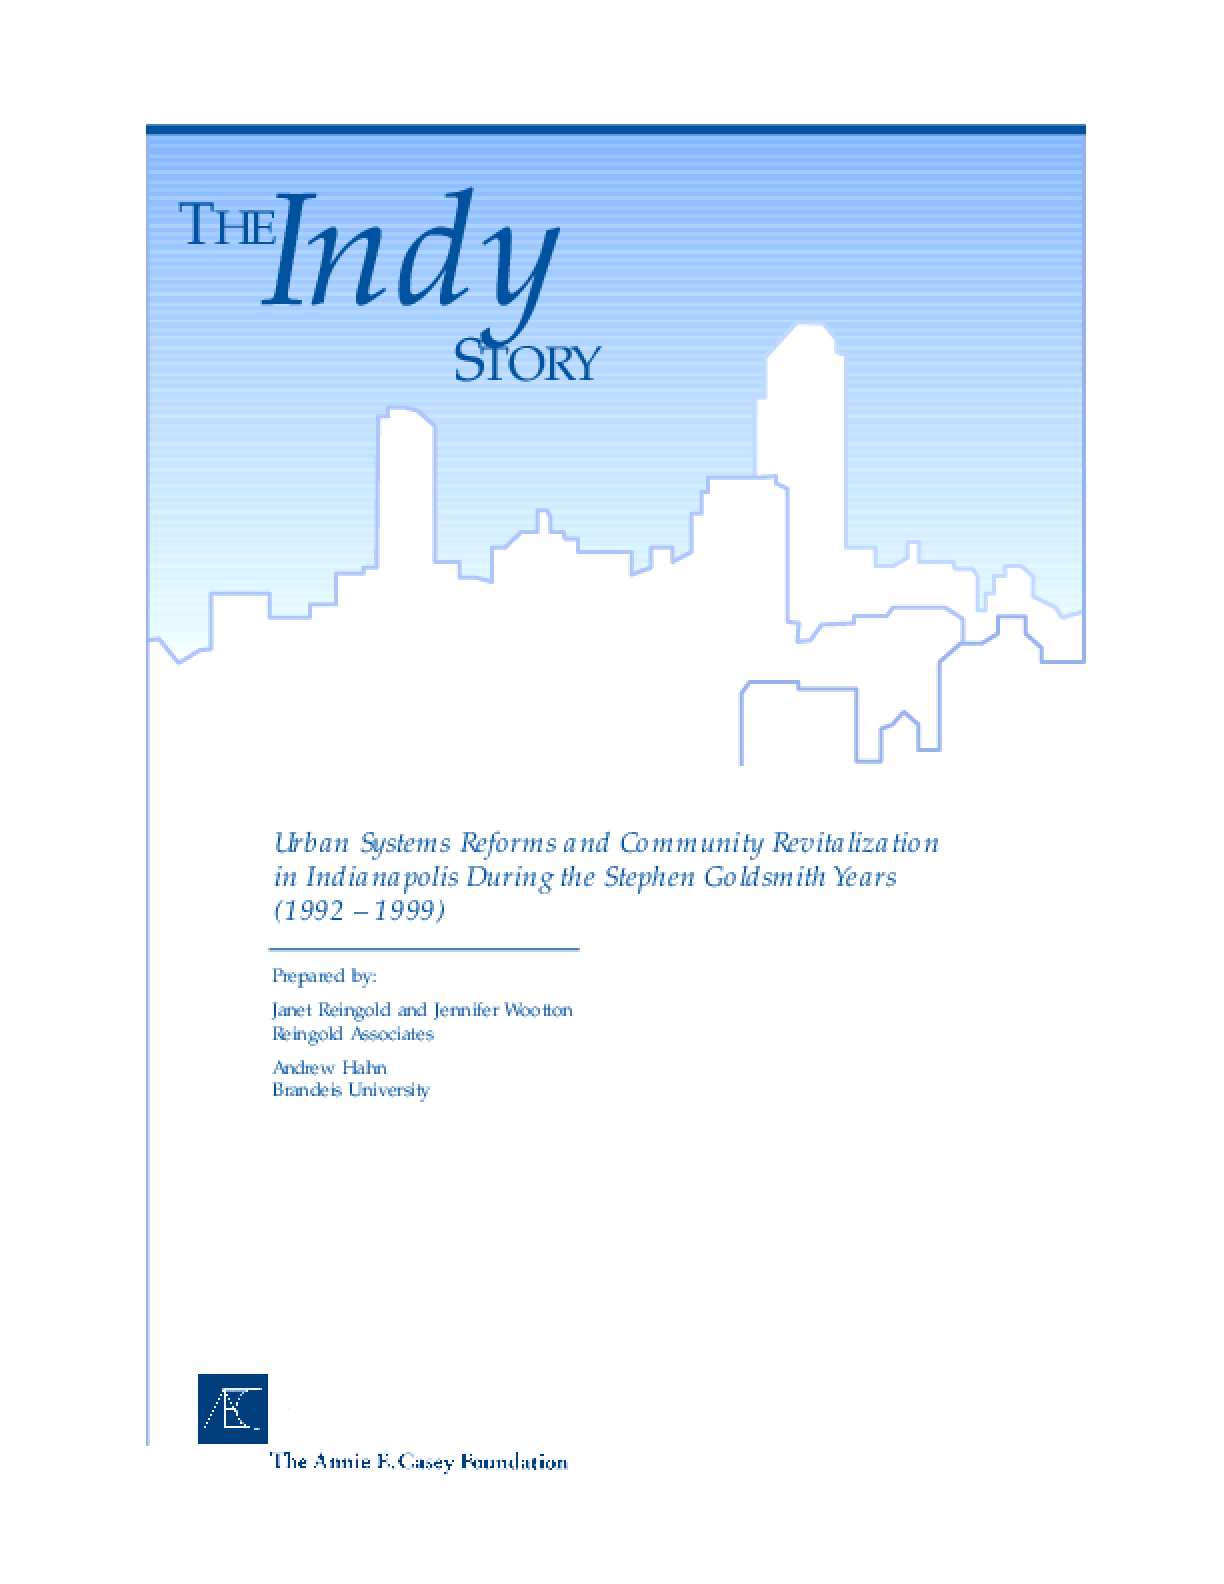 The Indy Story: Urban Systems Reforms and Community Revitalization in Indianapolis During the Stephen Goldsmith Years